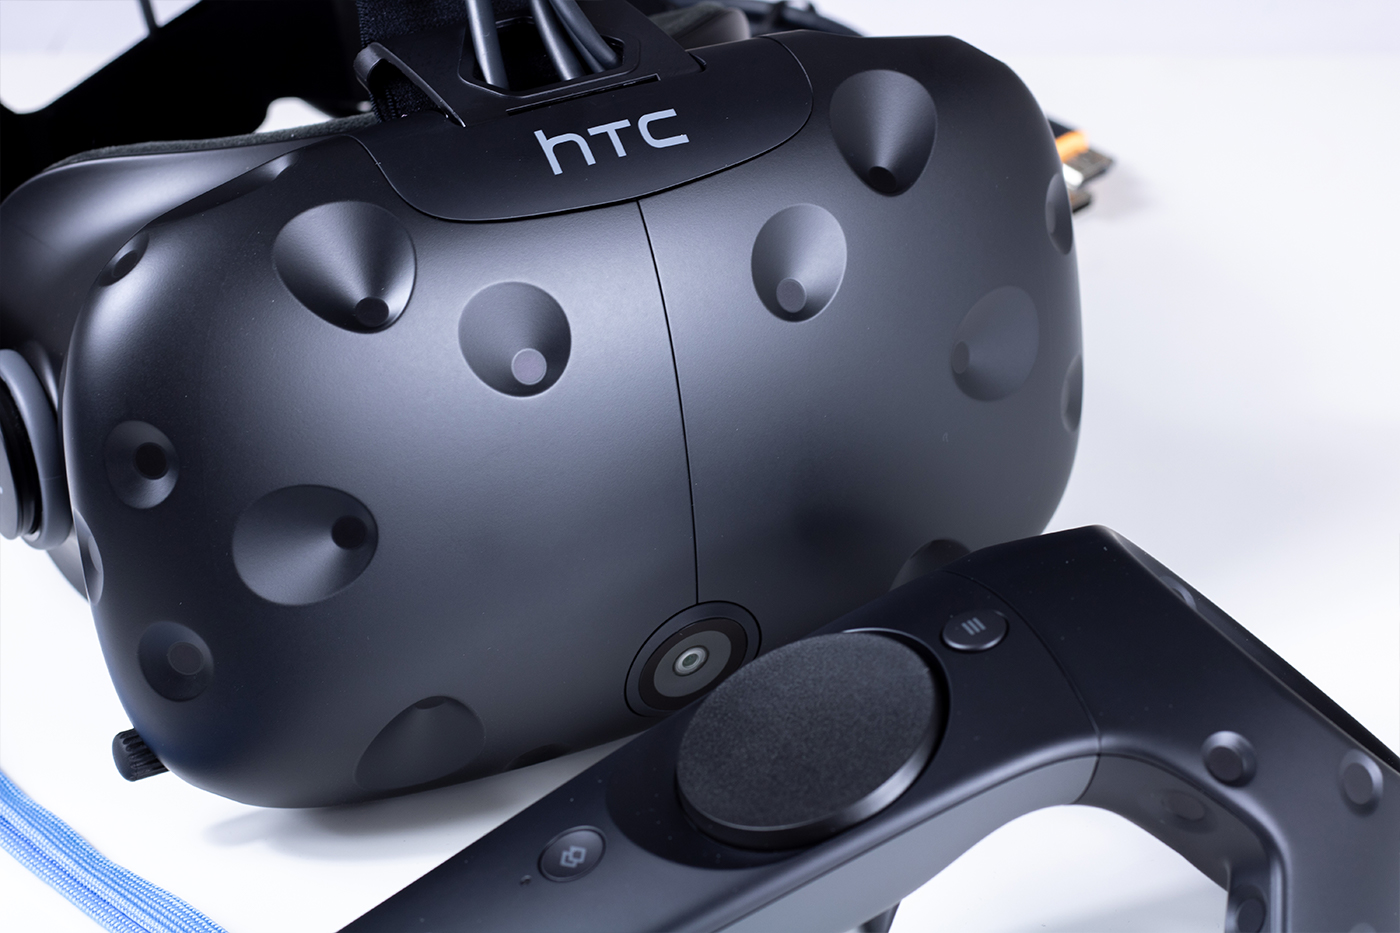 HTC Vive Headset with Controller